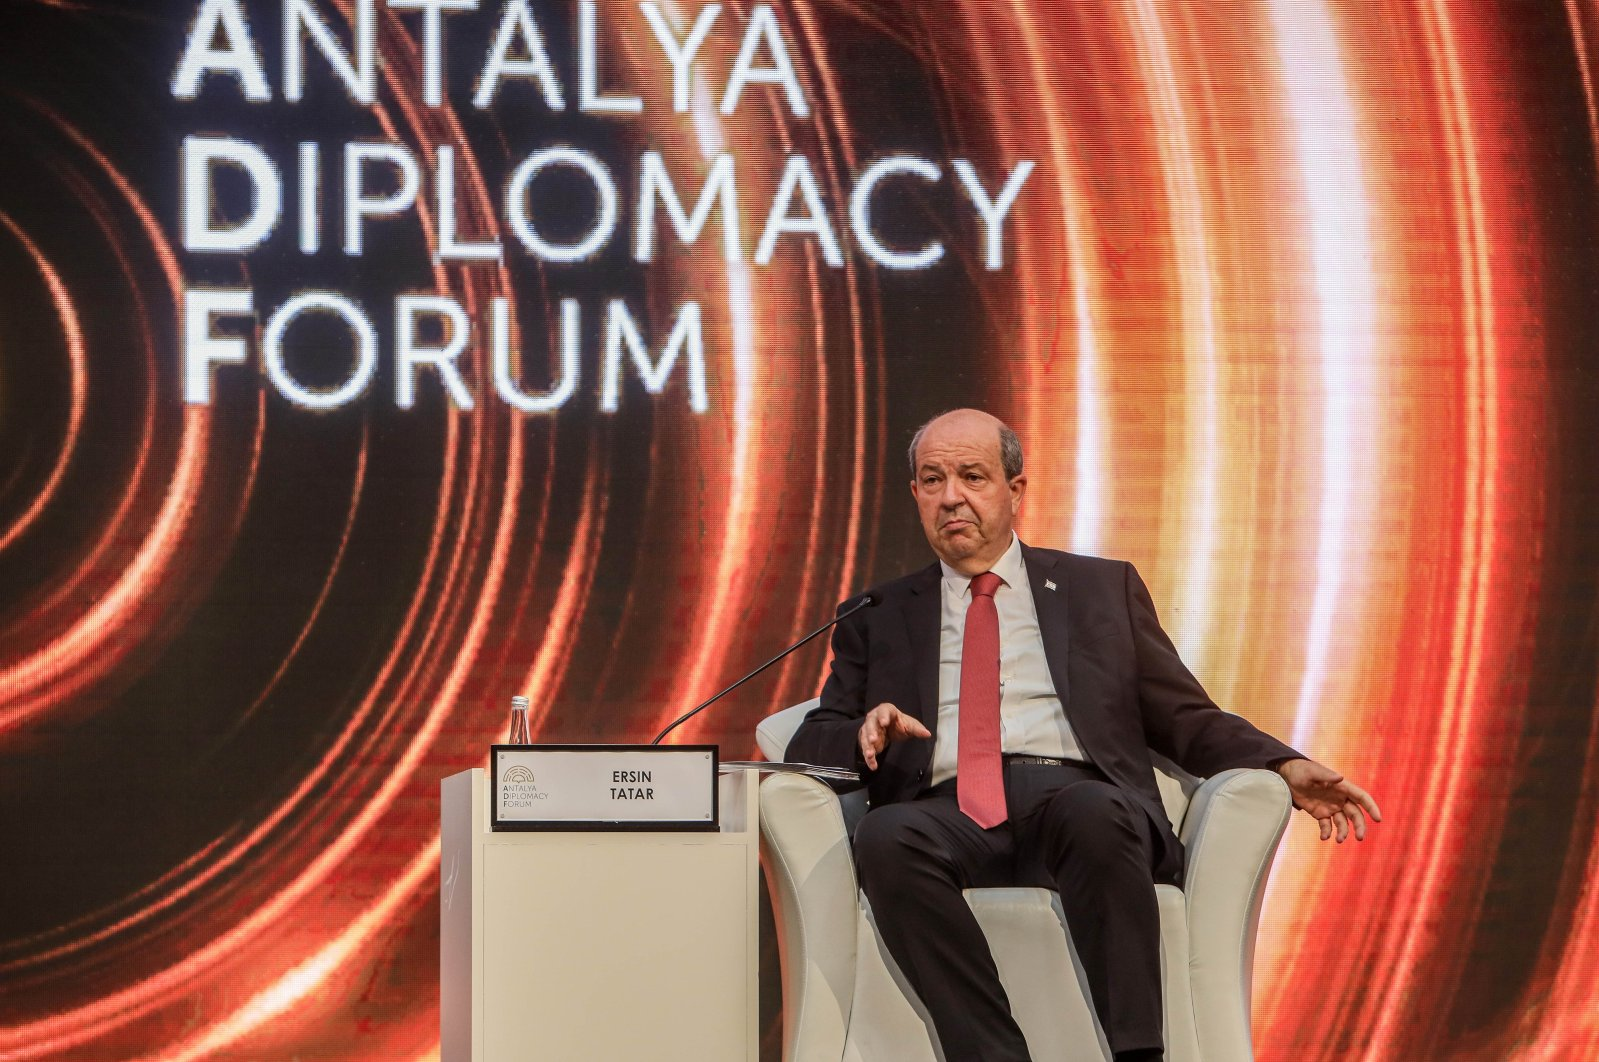 Ersin Tatar, the president of the Turkish Republic of Northern Cyprus (TRNC), attends a session of the Antalya Diplomacy Forum, Antalya, Turkey, June 19, 2021. (DHA Photo)